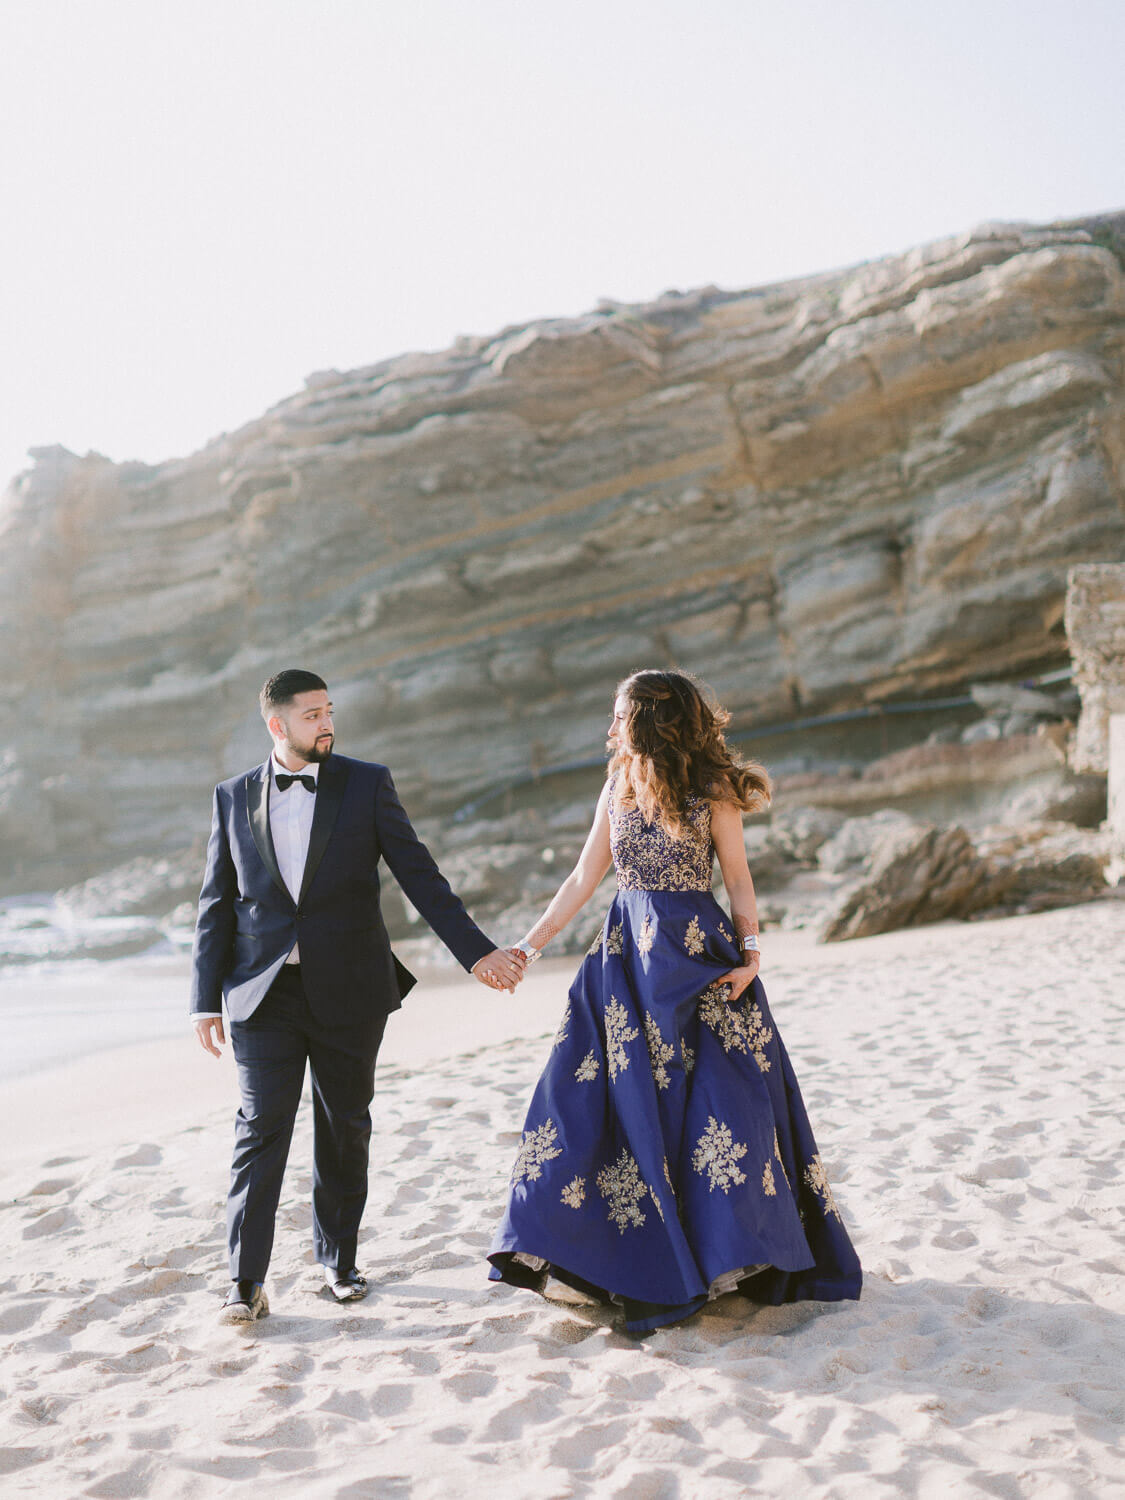 Hindu bride and groom romantic stroll at the beach by Portugal Wedding Photographer